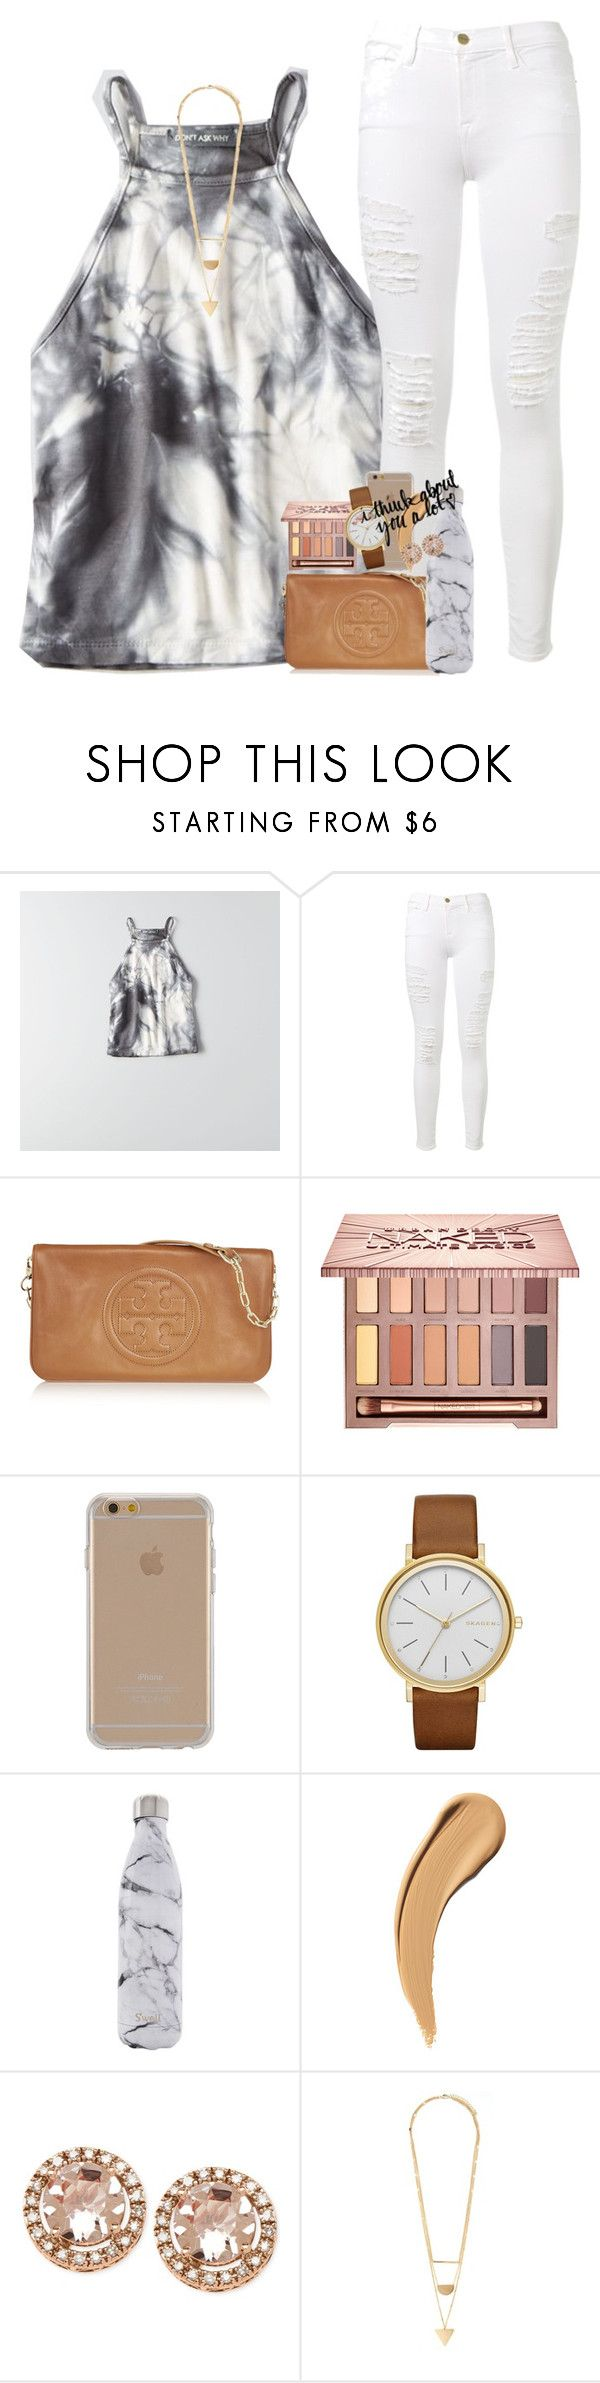 """mixed signals "" by ellaswiftie13 on Polyvore featuring American Eagle Outfitters, Frame Denim, Tory Burch, Urban Decay, Agent 18, Skagen, S'well and Forever 21"